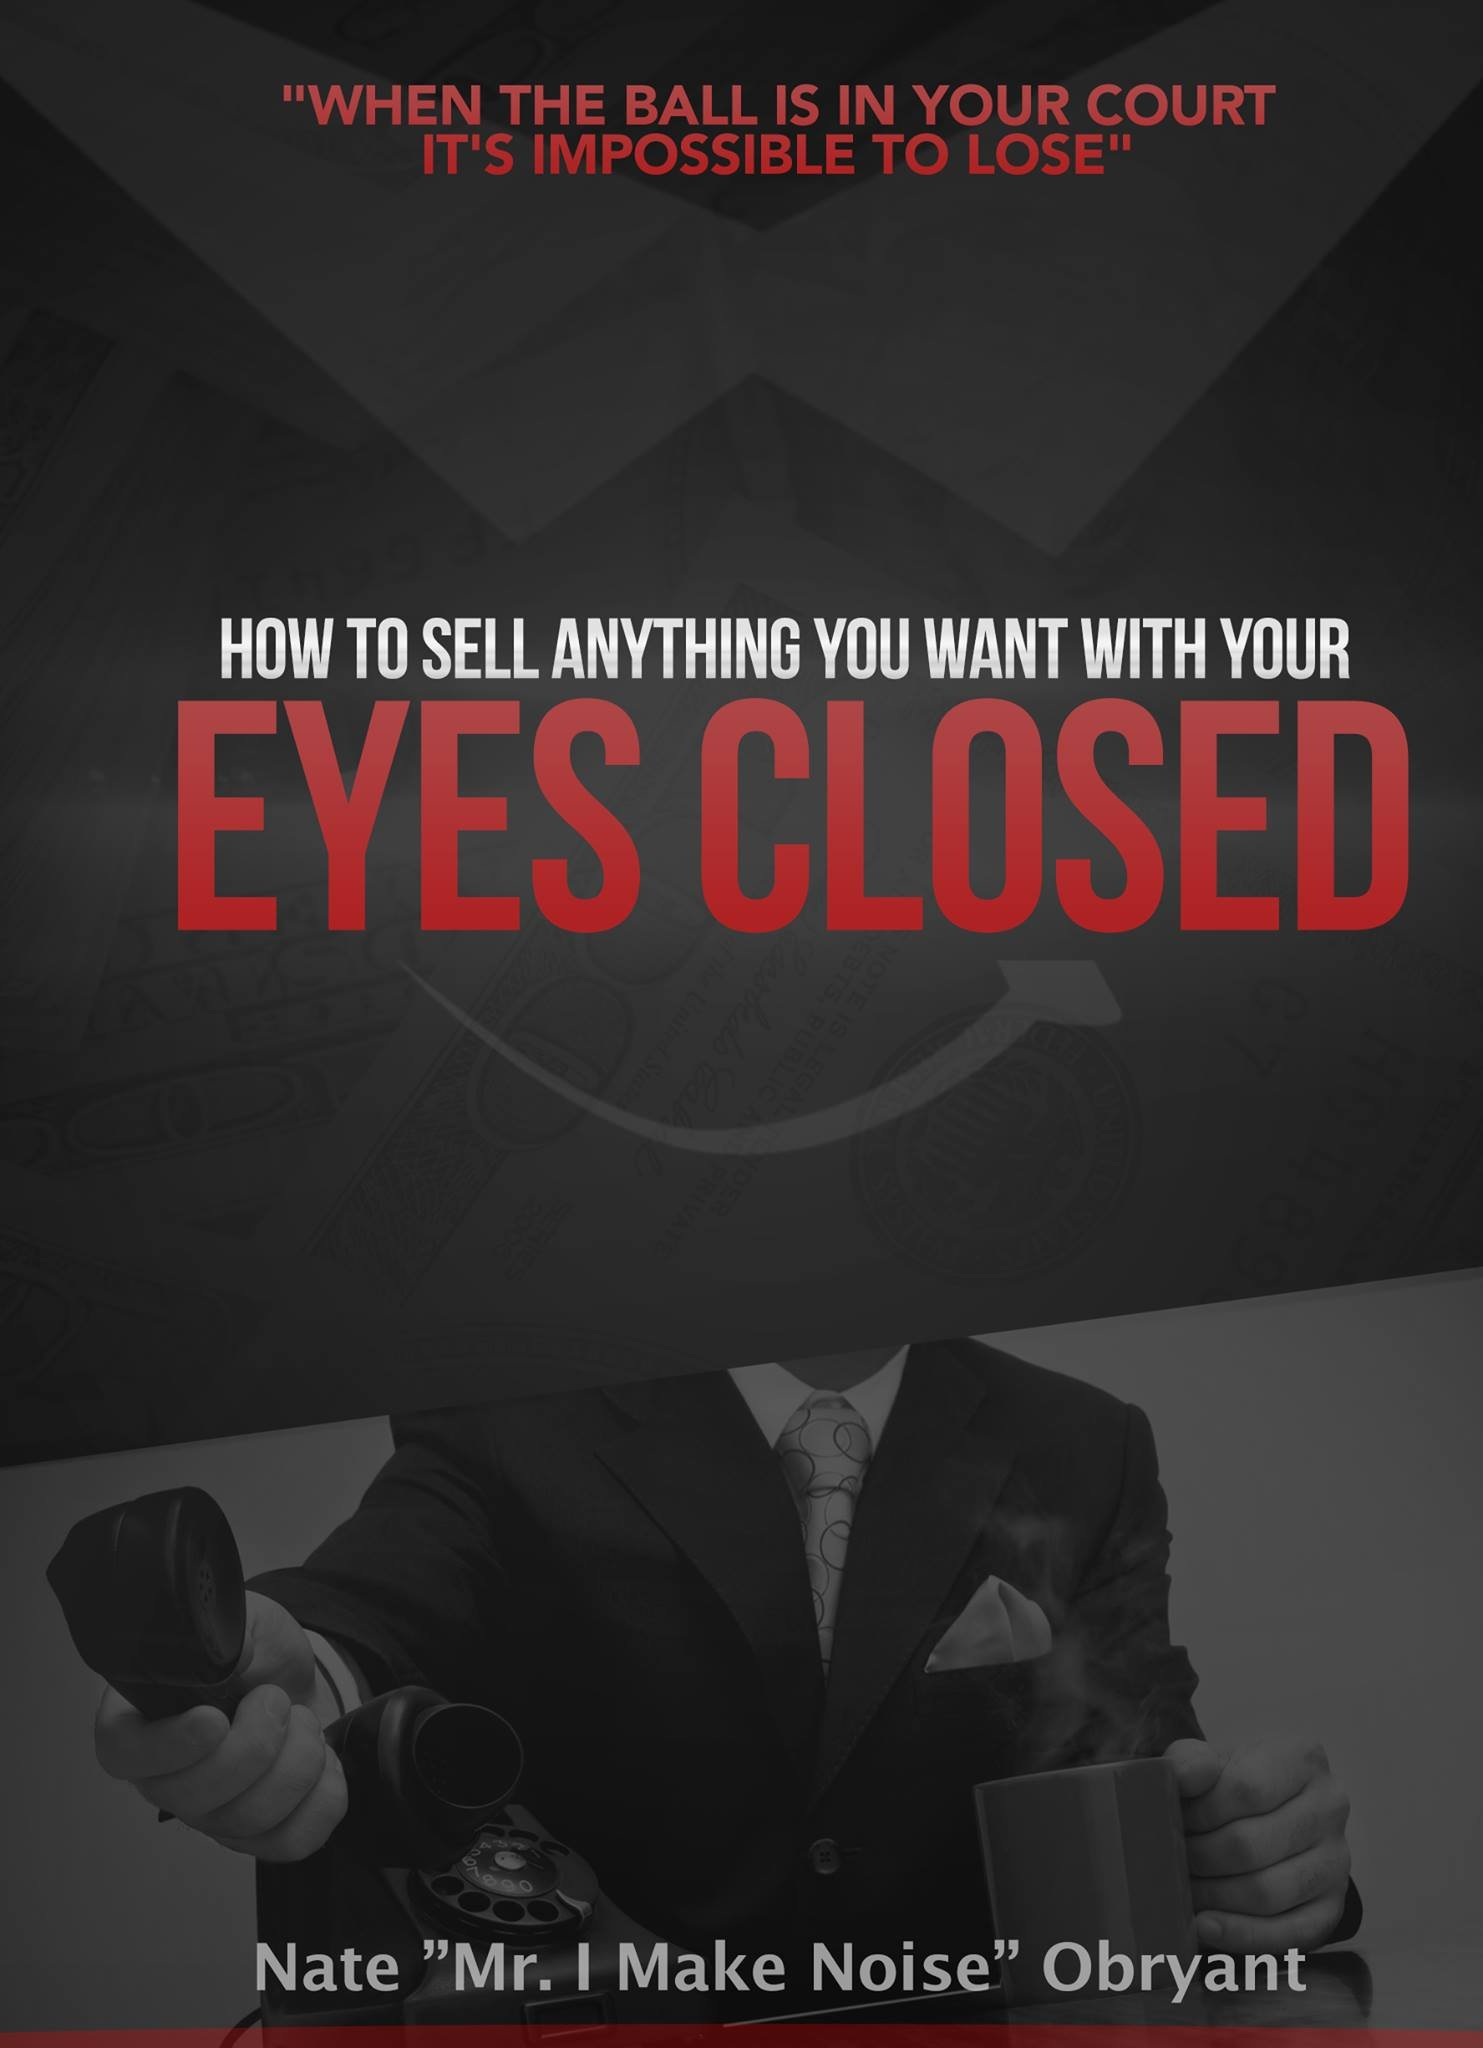 How To Sell Anything You Want With Your Eyes Closed